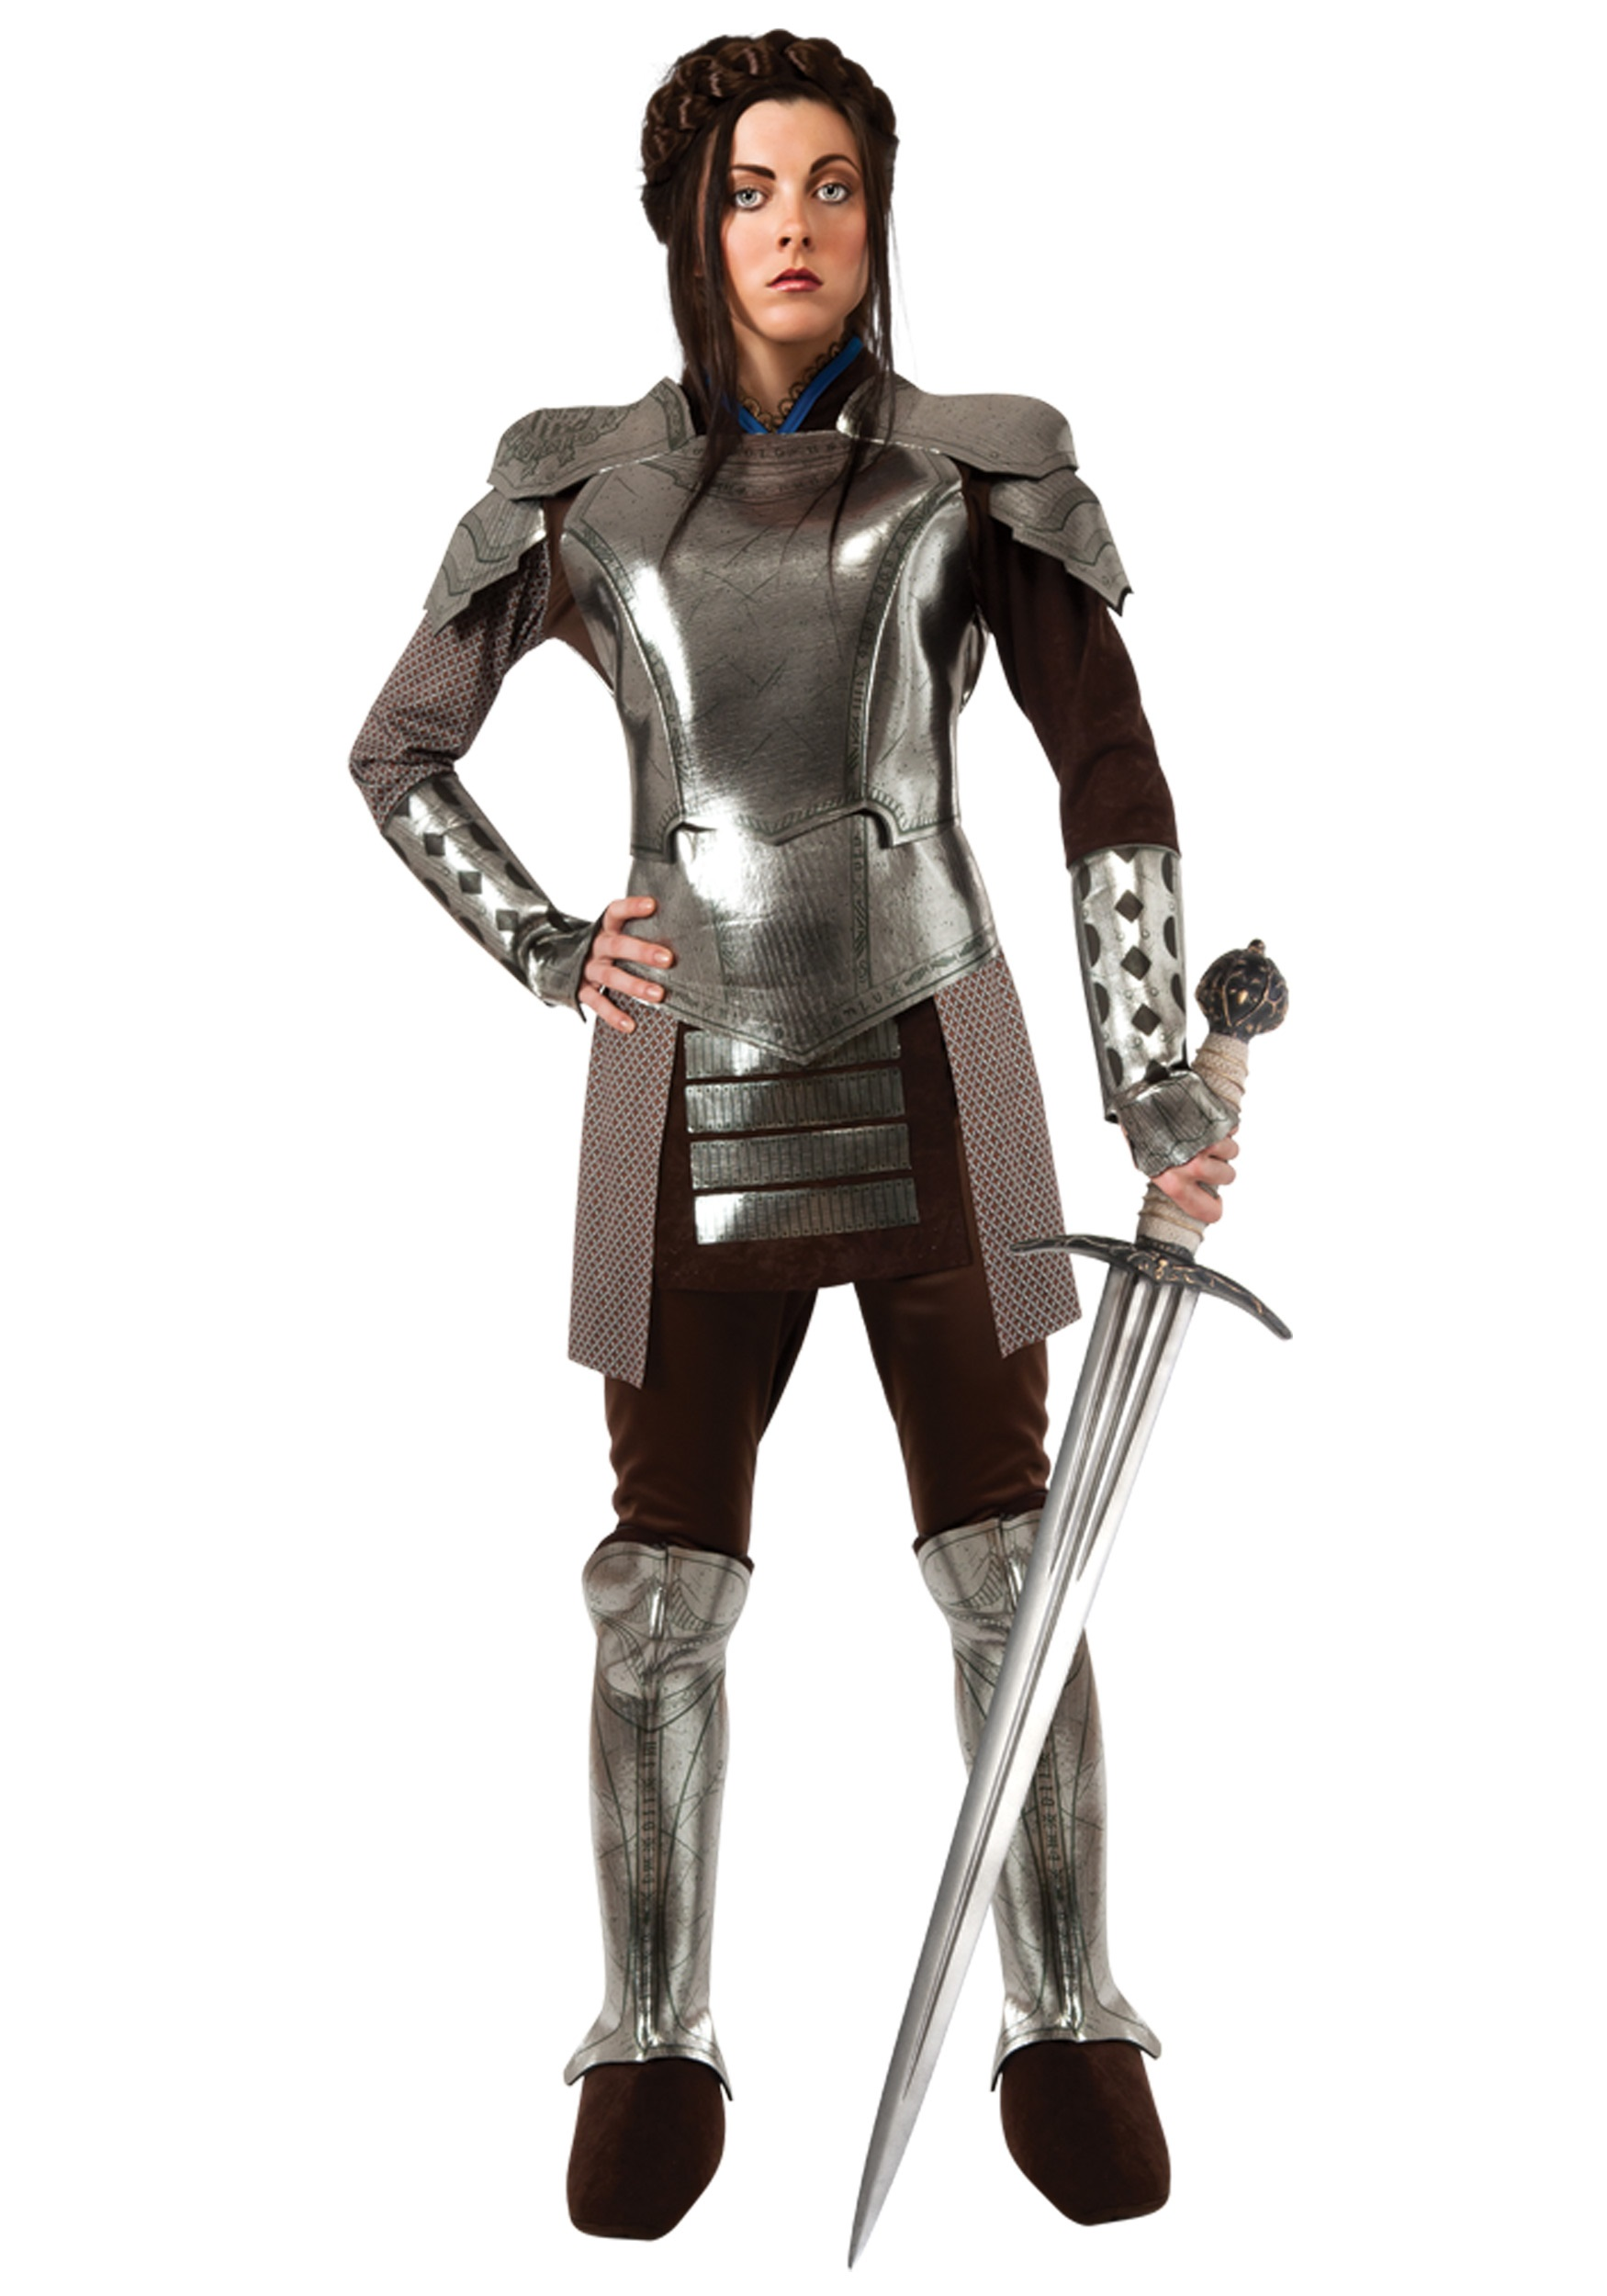 Adult Snow White and the Huntsman Armor Costume  sc 1 st  Halloween Costumes & Adult Snow White and the Huntsman Armor Costume - Halloween Costume ...